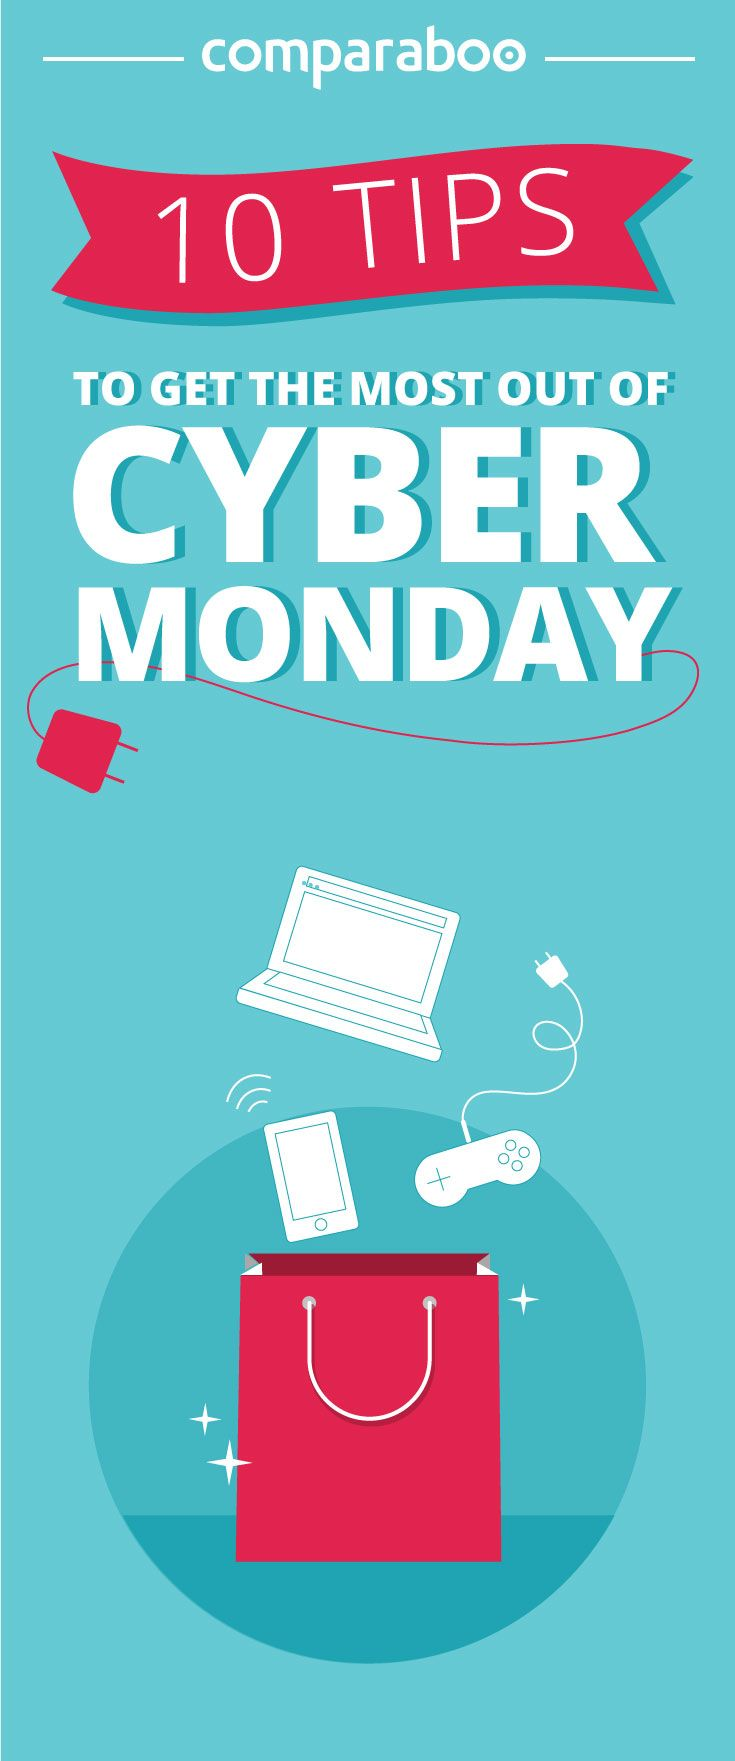 How to make the most out of your Black Friday/Cyber Monday shopping? 10 tips to get the most out of Cyber Monday! #CyberMonday